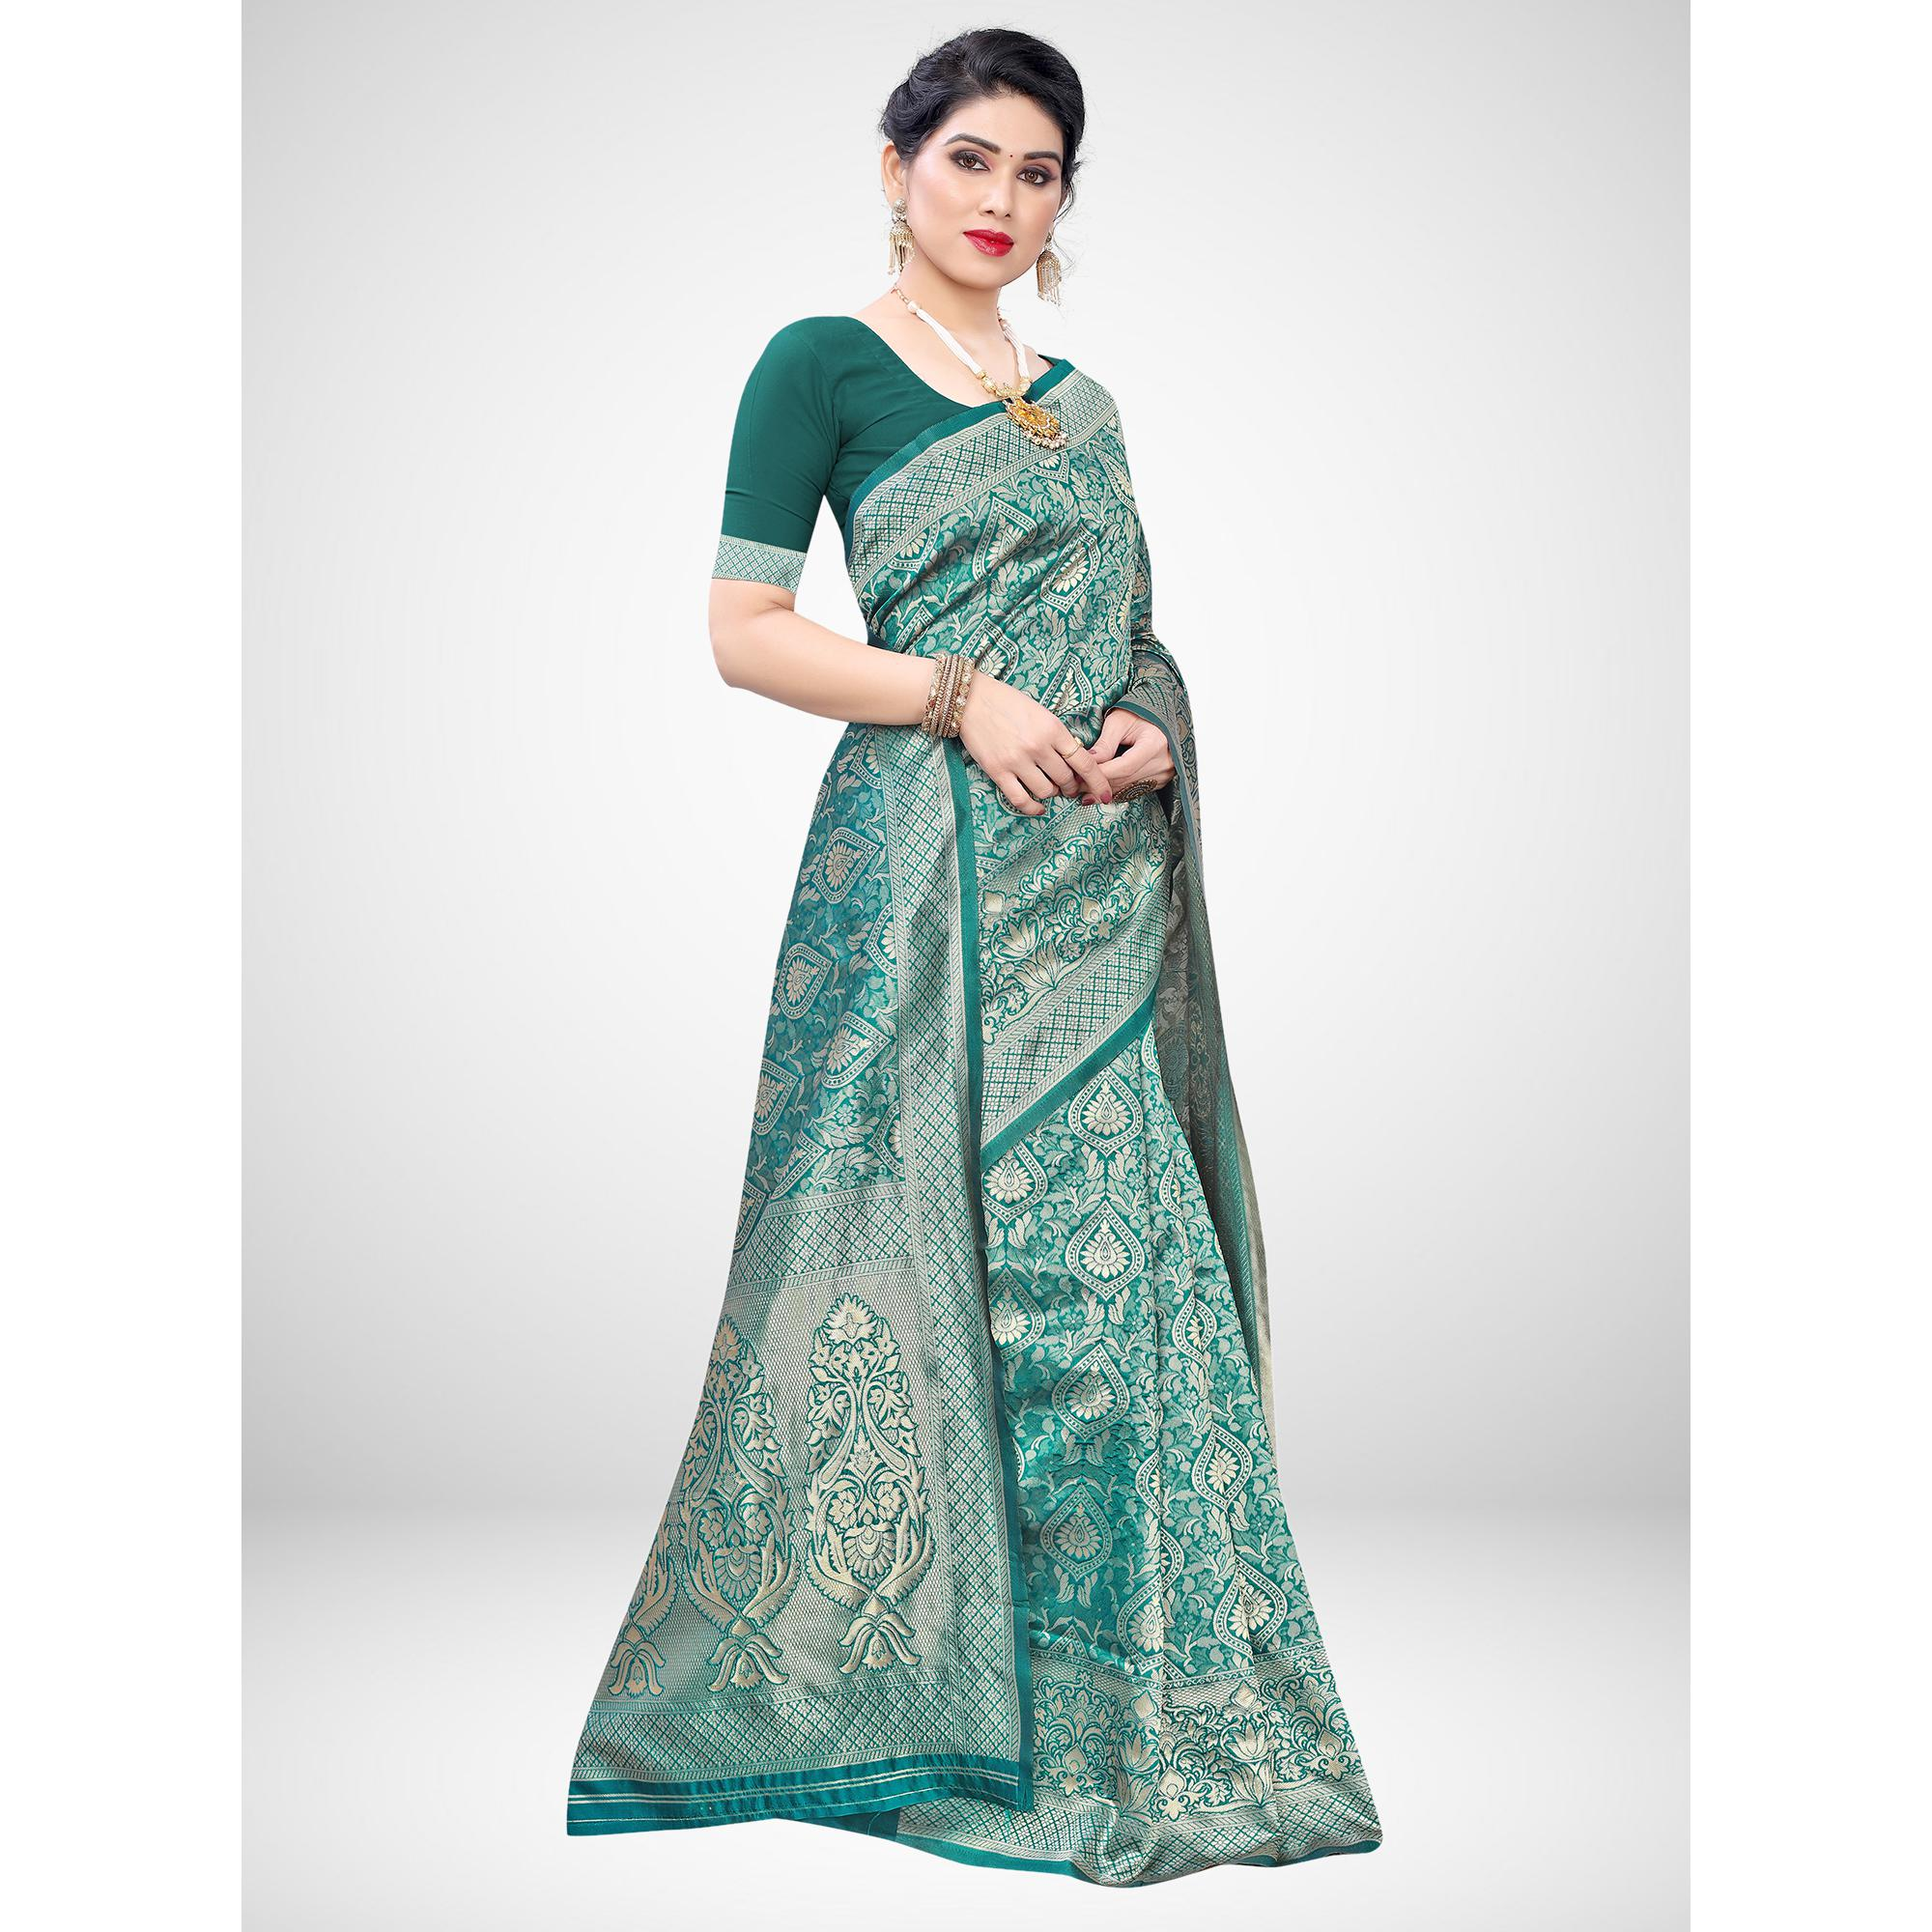 Ethnic Teal Green Colored Festive Wear Woven Silk Blend Saree